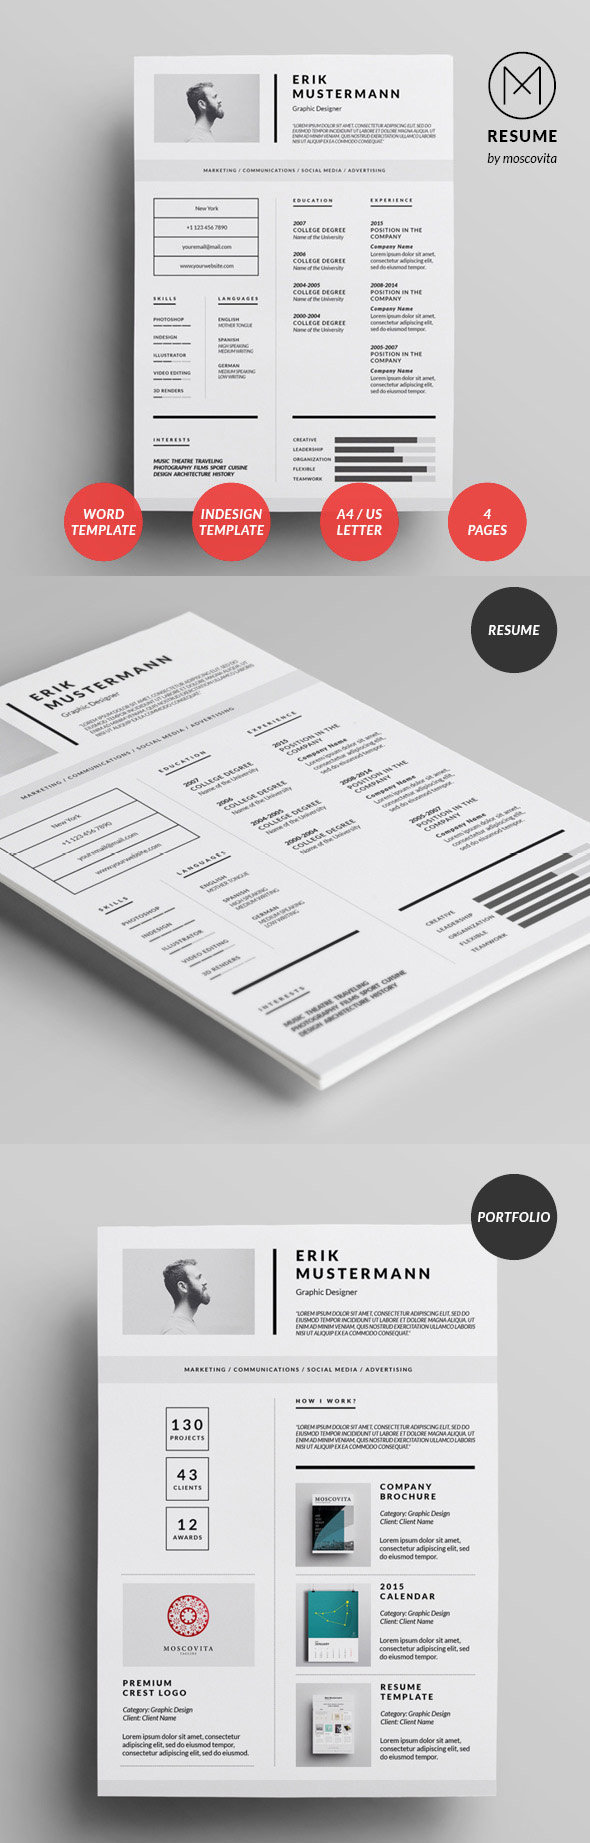 50 Best Minimal Resume Templates - 20